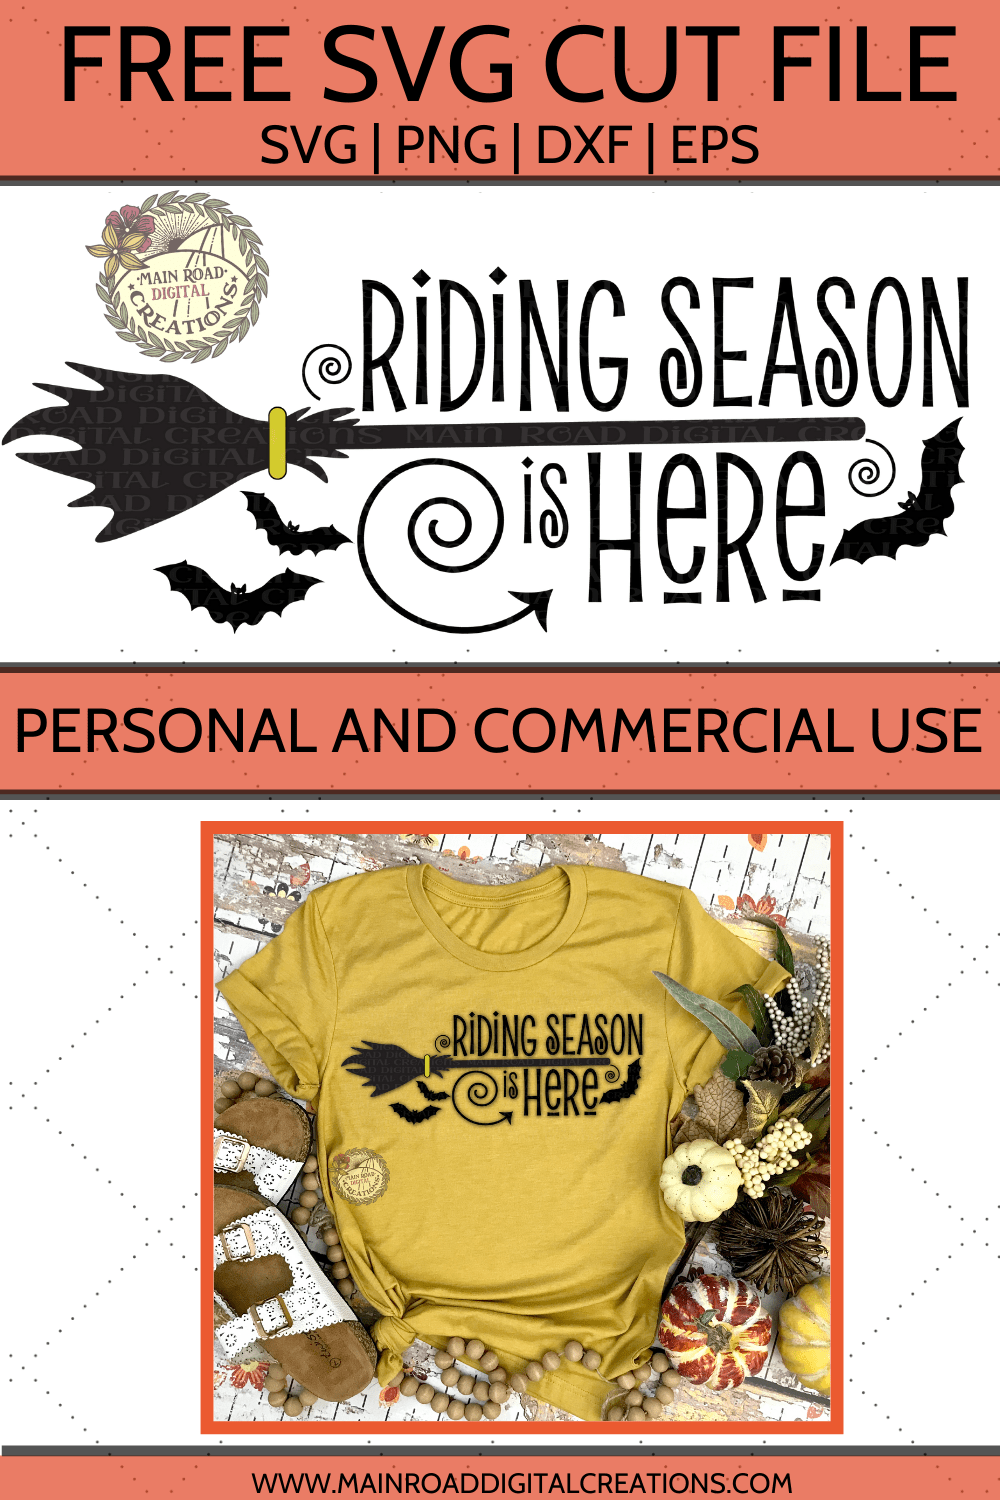 free halloween svg, riding season is here svg, cricut projects, halloween cut files, witches broom svg free, fall clipart, october clipart